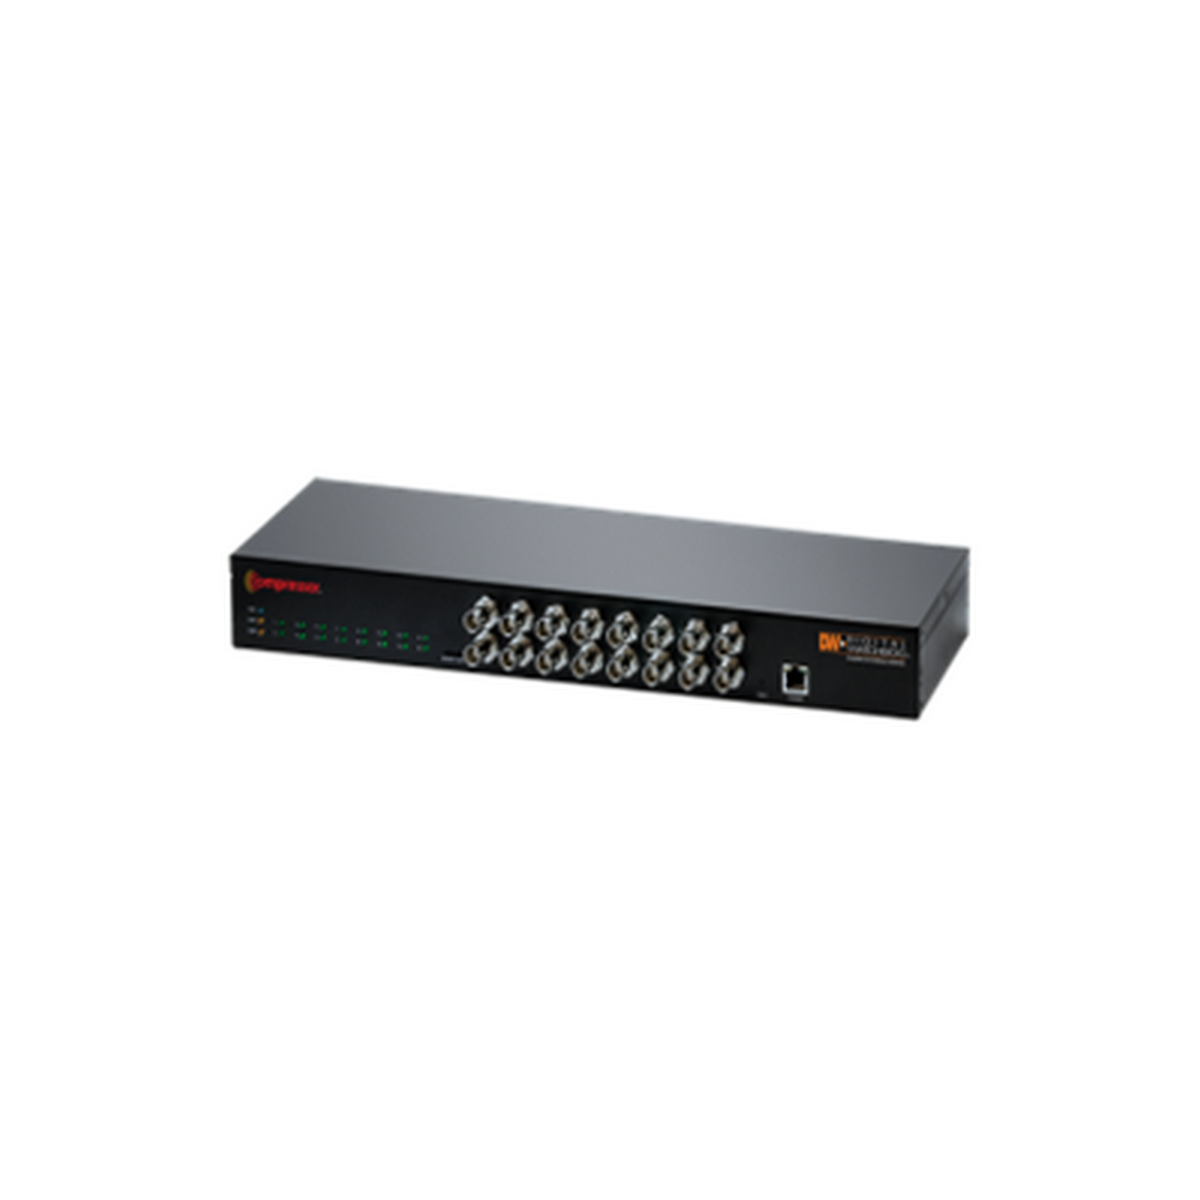 DW-CP16 DIGITAL WATCHDOG  Compressor™ 16-Channel IP Signal Encoder ,converts up to 16 analog cameras into IP streams with real-time viewing and recording at 960H and D1 resolutions.